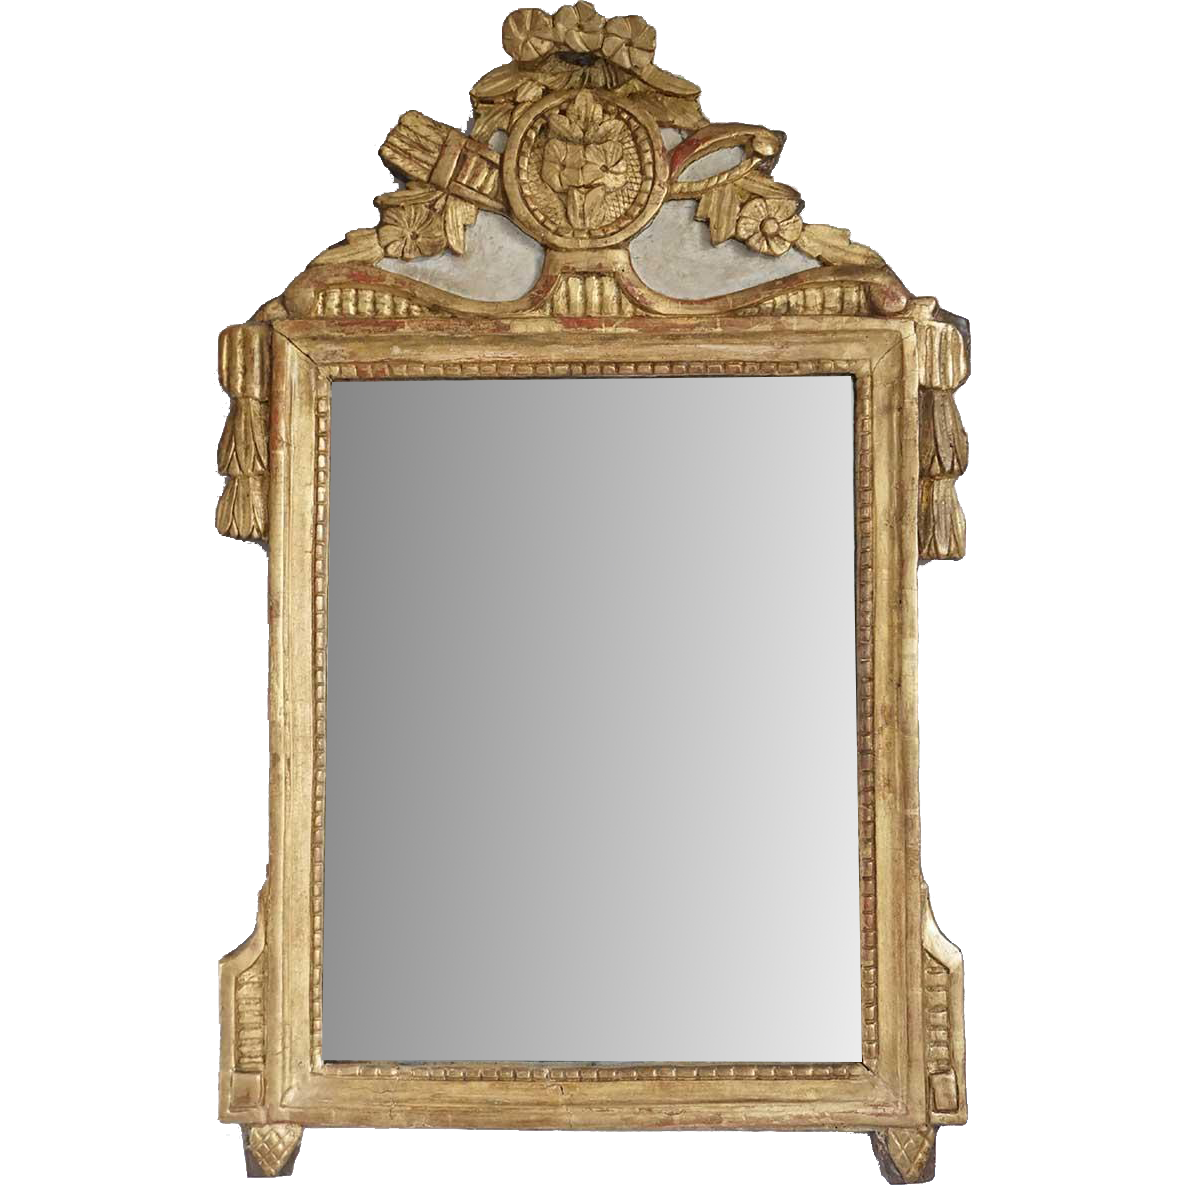 French Provincial Louis XVI Style Gilt and Cream Painted Mirror